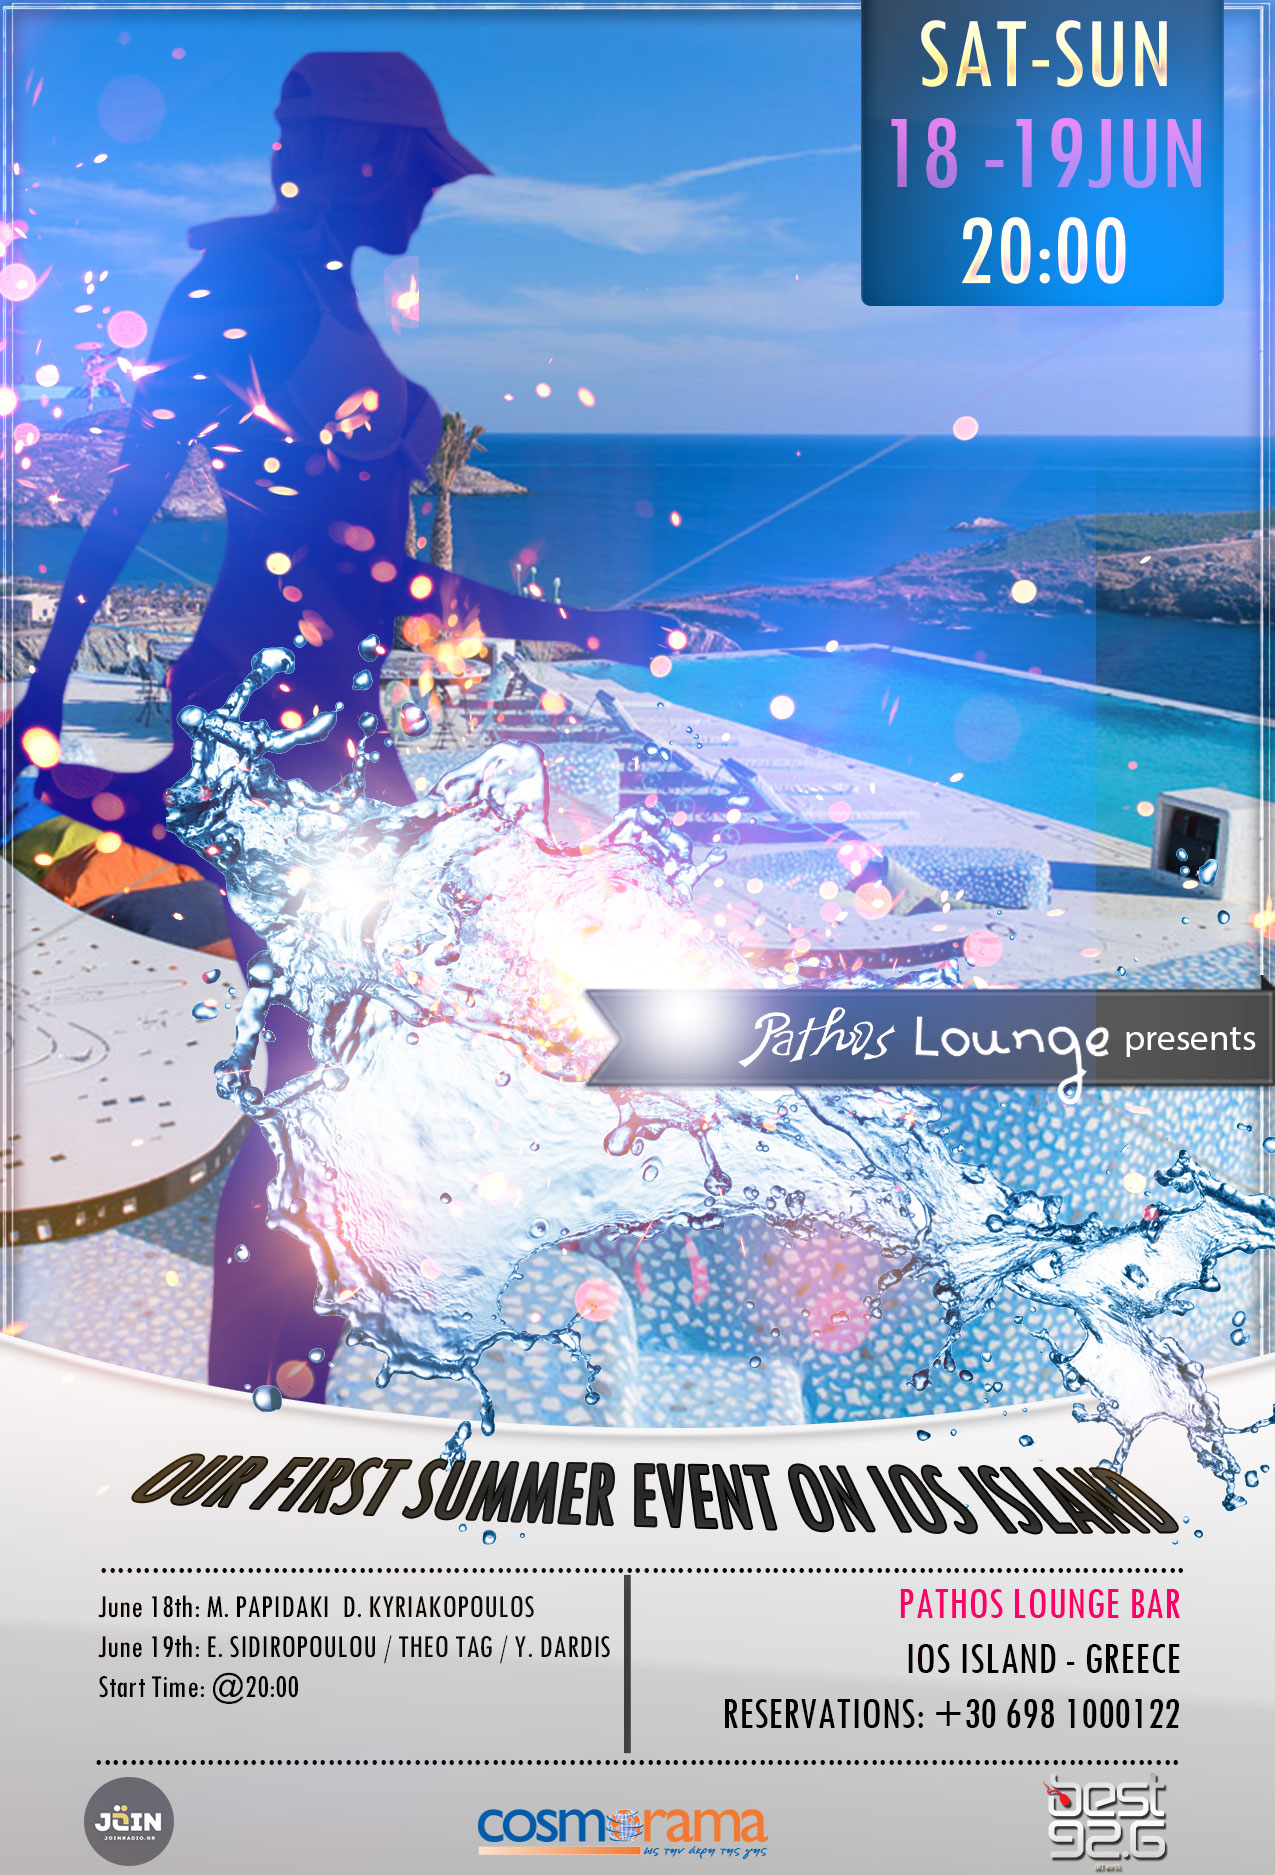 Summer Party @Pathos Lounge 2016 June 18-19